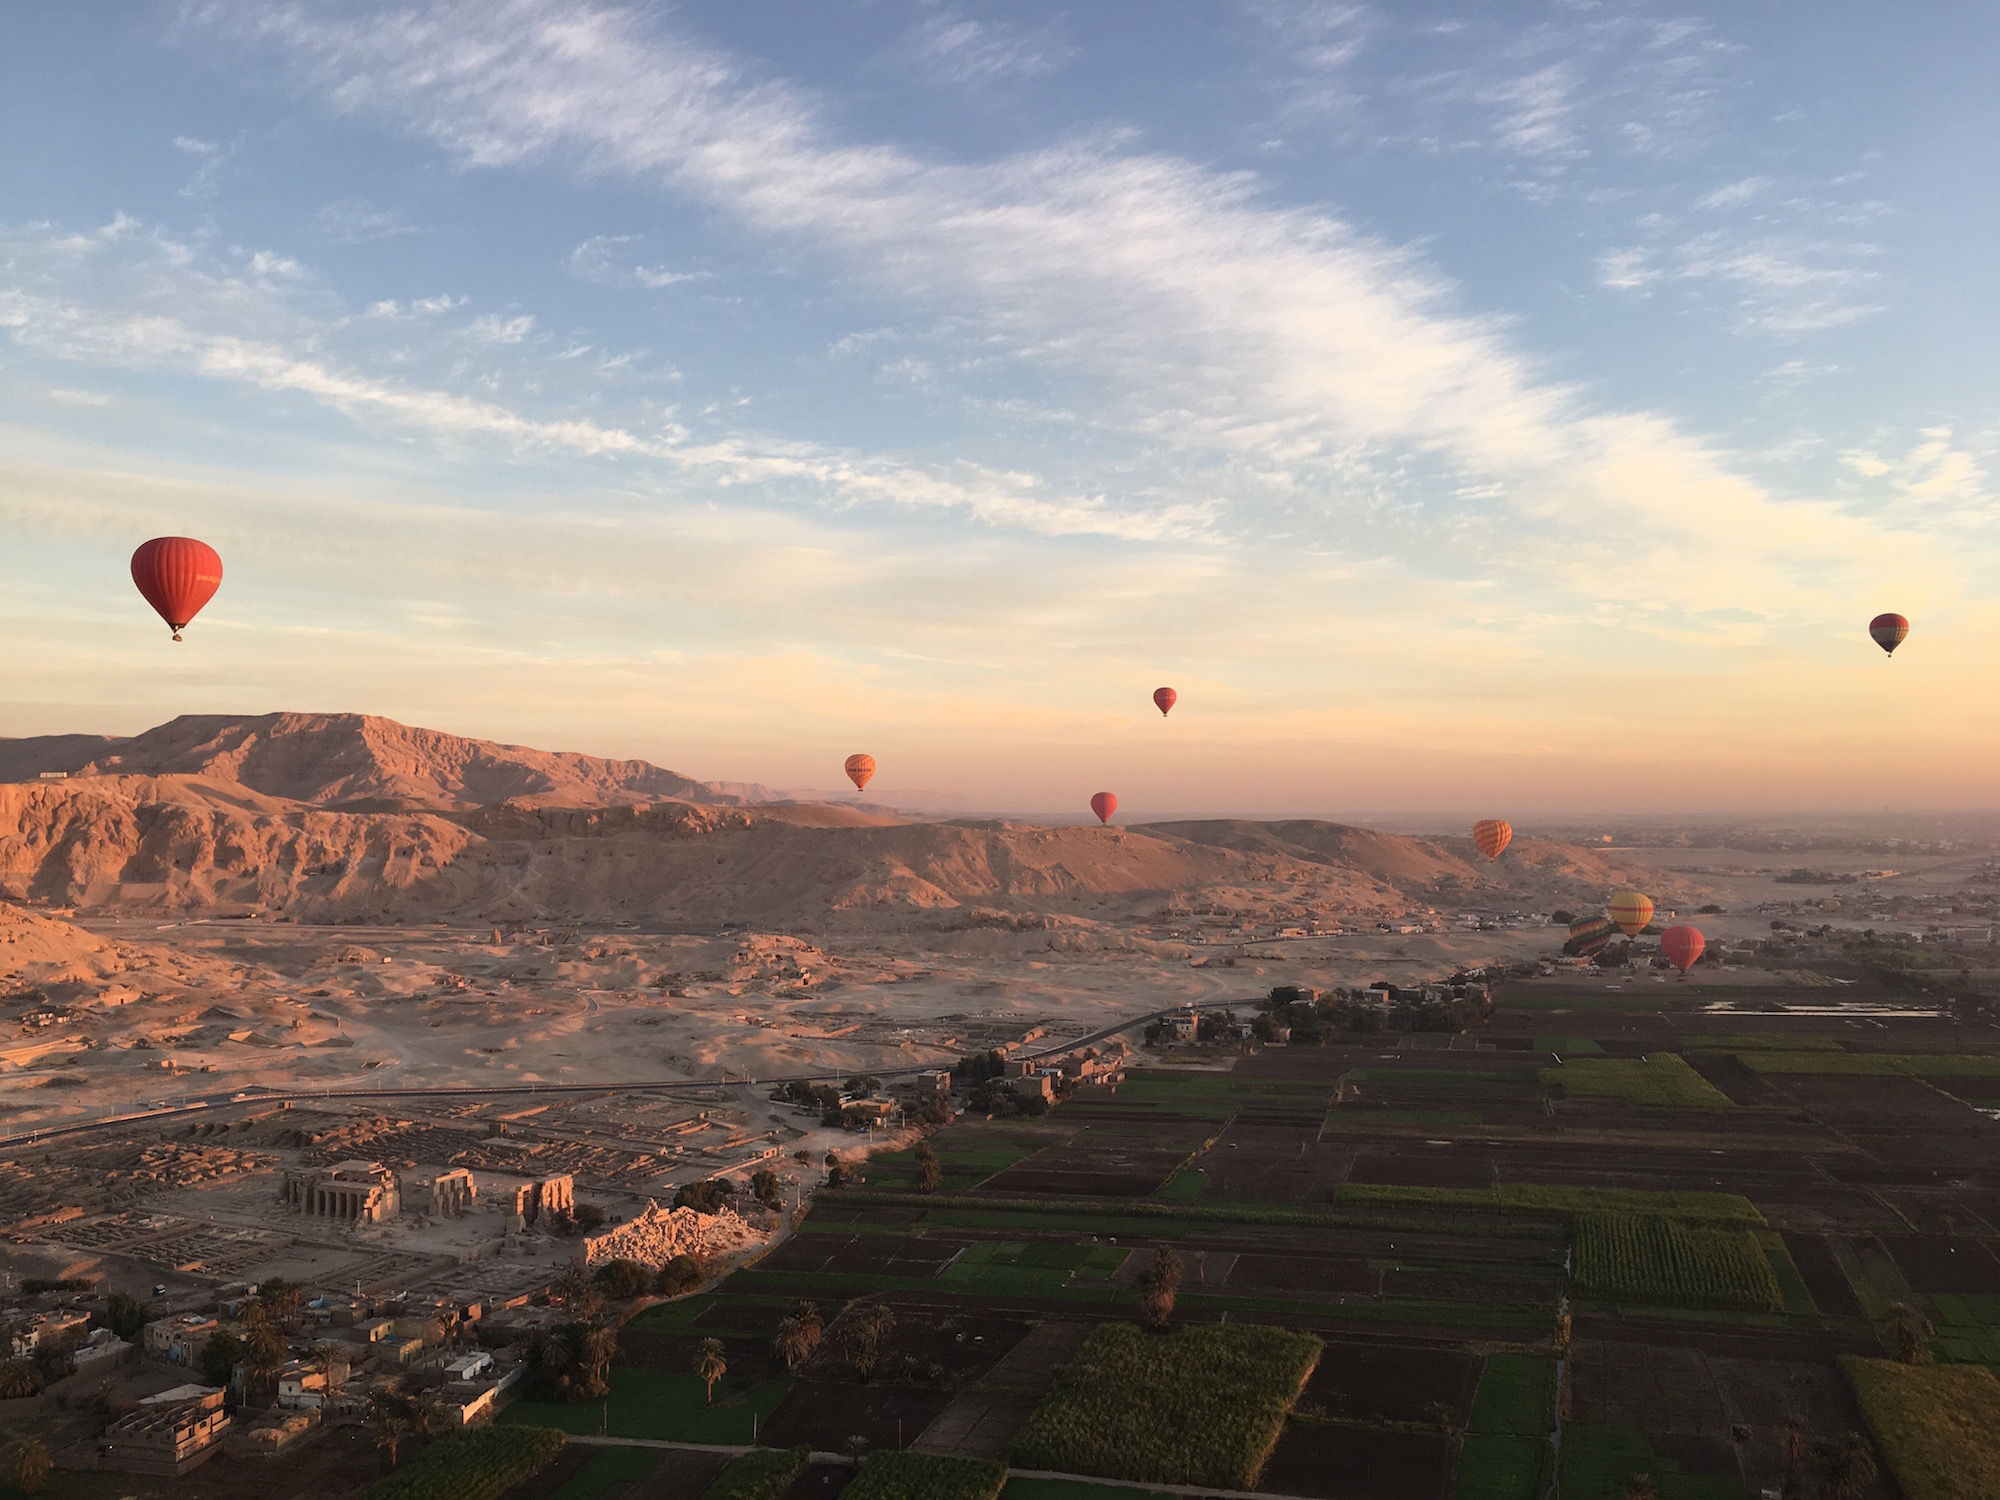 Hot Air Balloon Adventure in Luxor Egypt - Things to do in Luxor - Best Adventures in Egypt